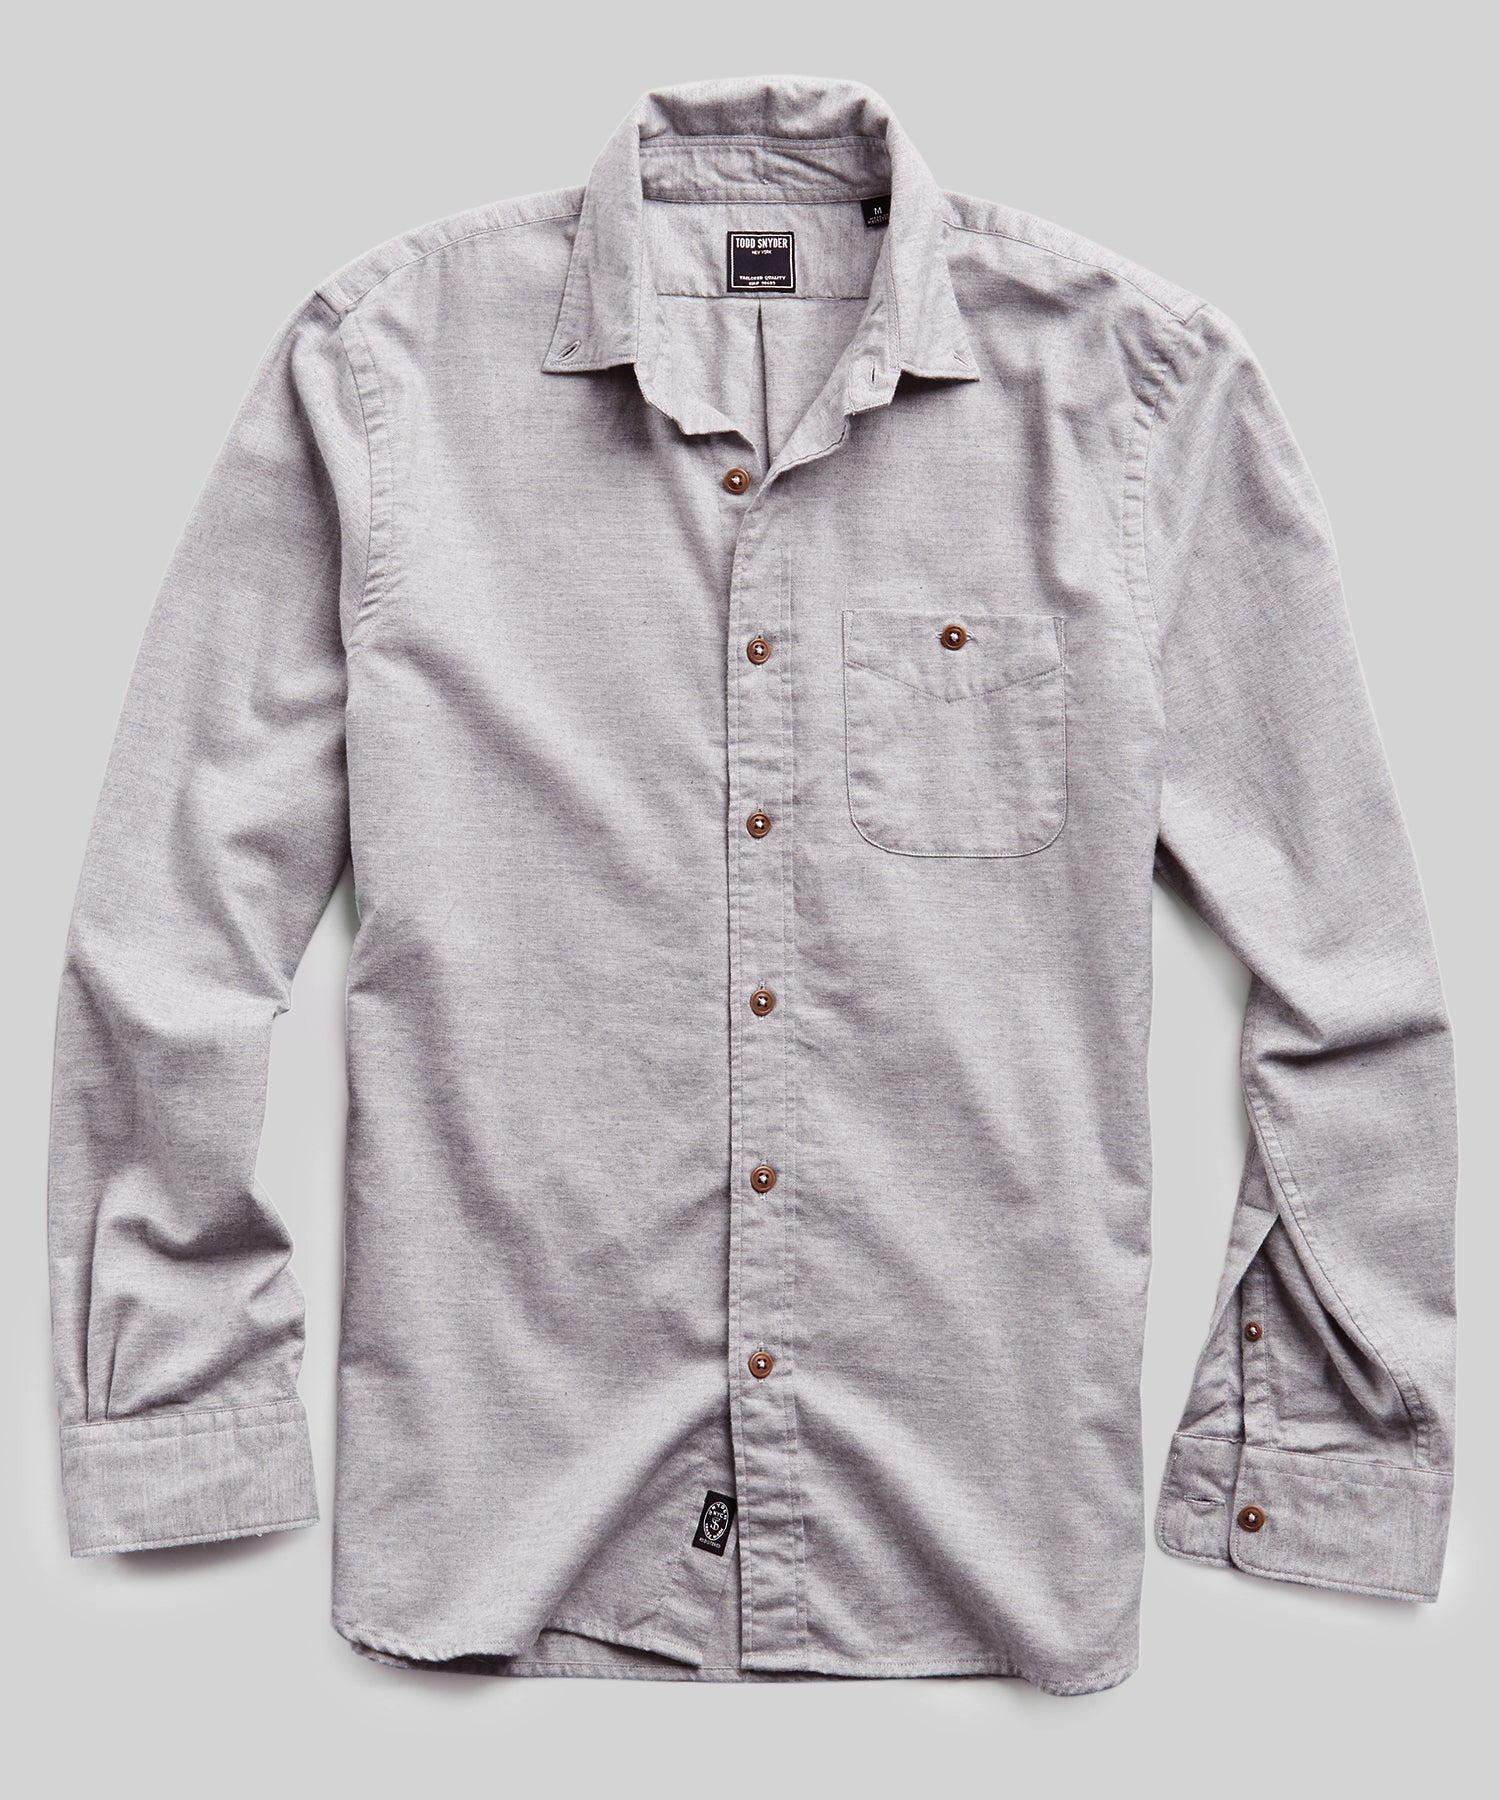 Todd Snyder Brushed Cotton Cashmere Twill Shirt